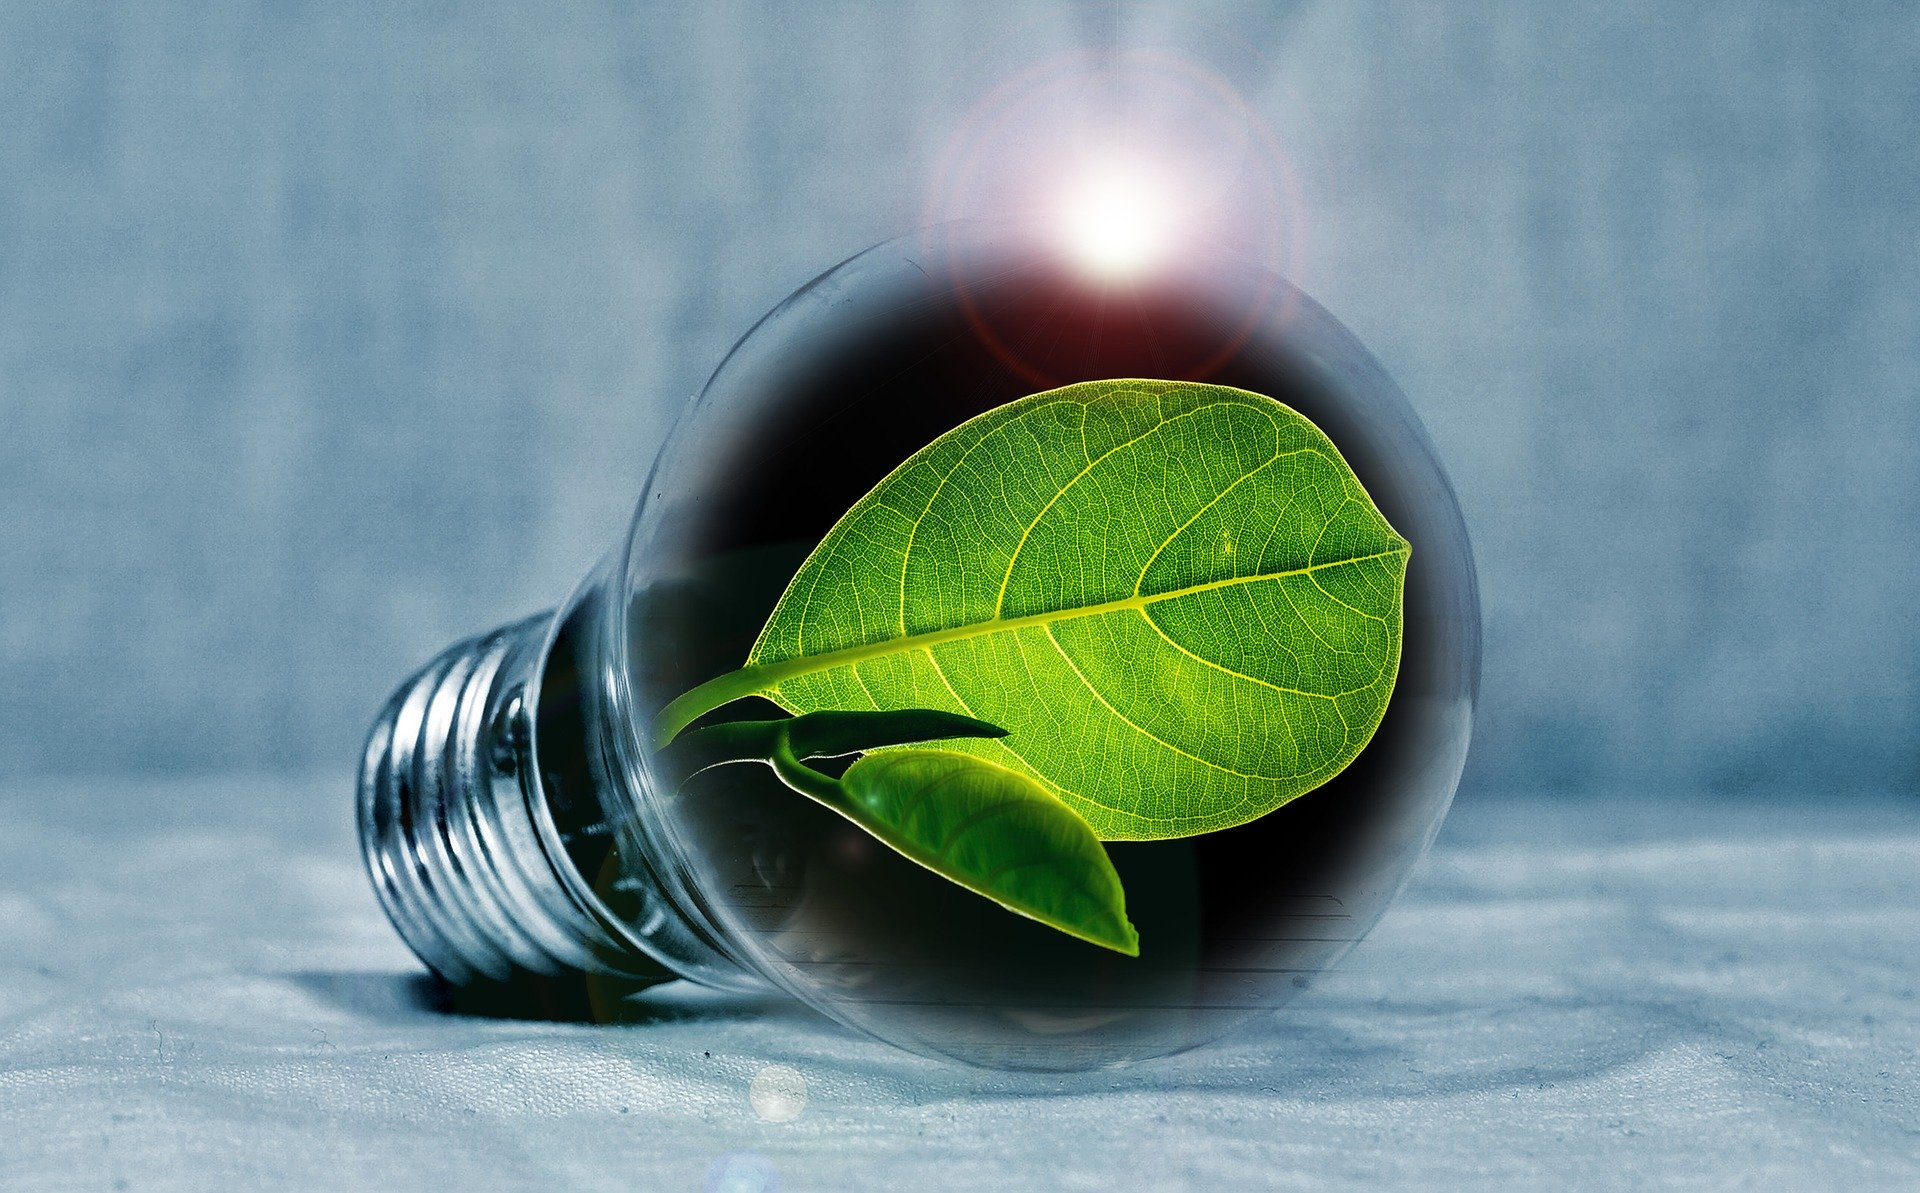 ENERGY EFFICIENCY SOLUTIONS FOR YOUR PROPERTY